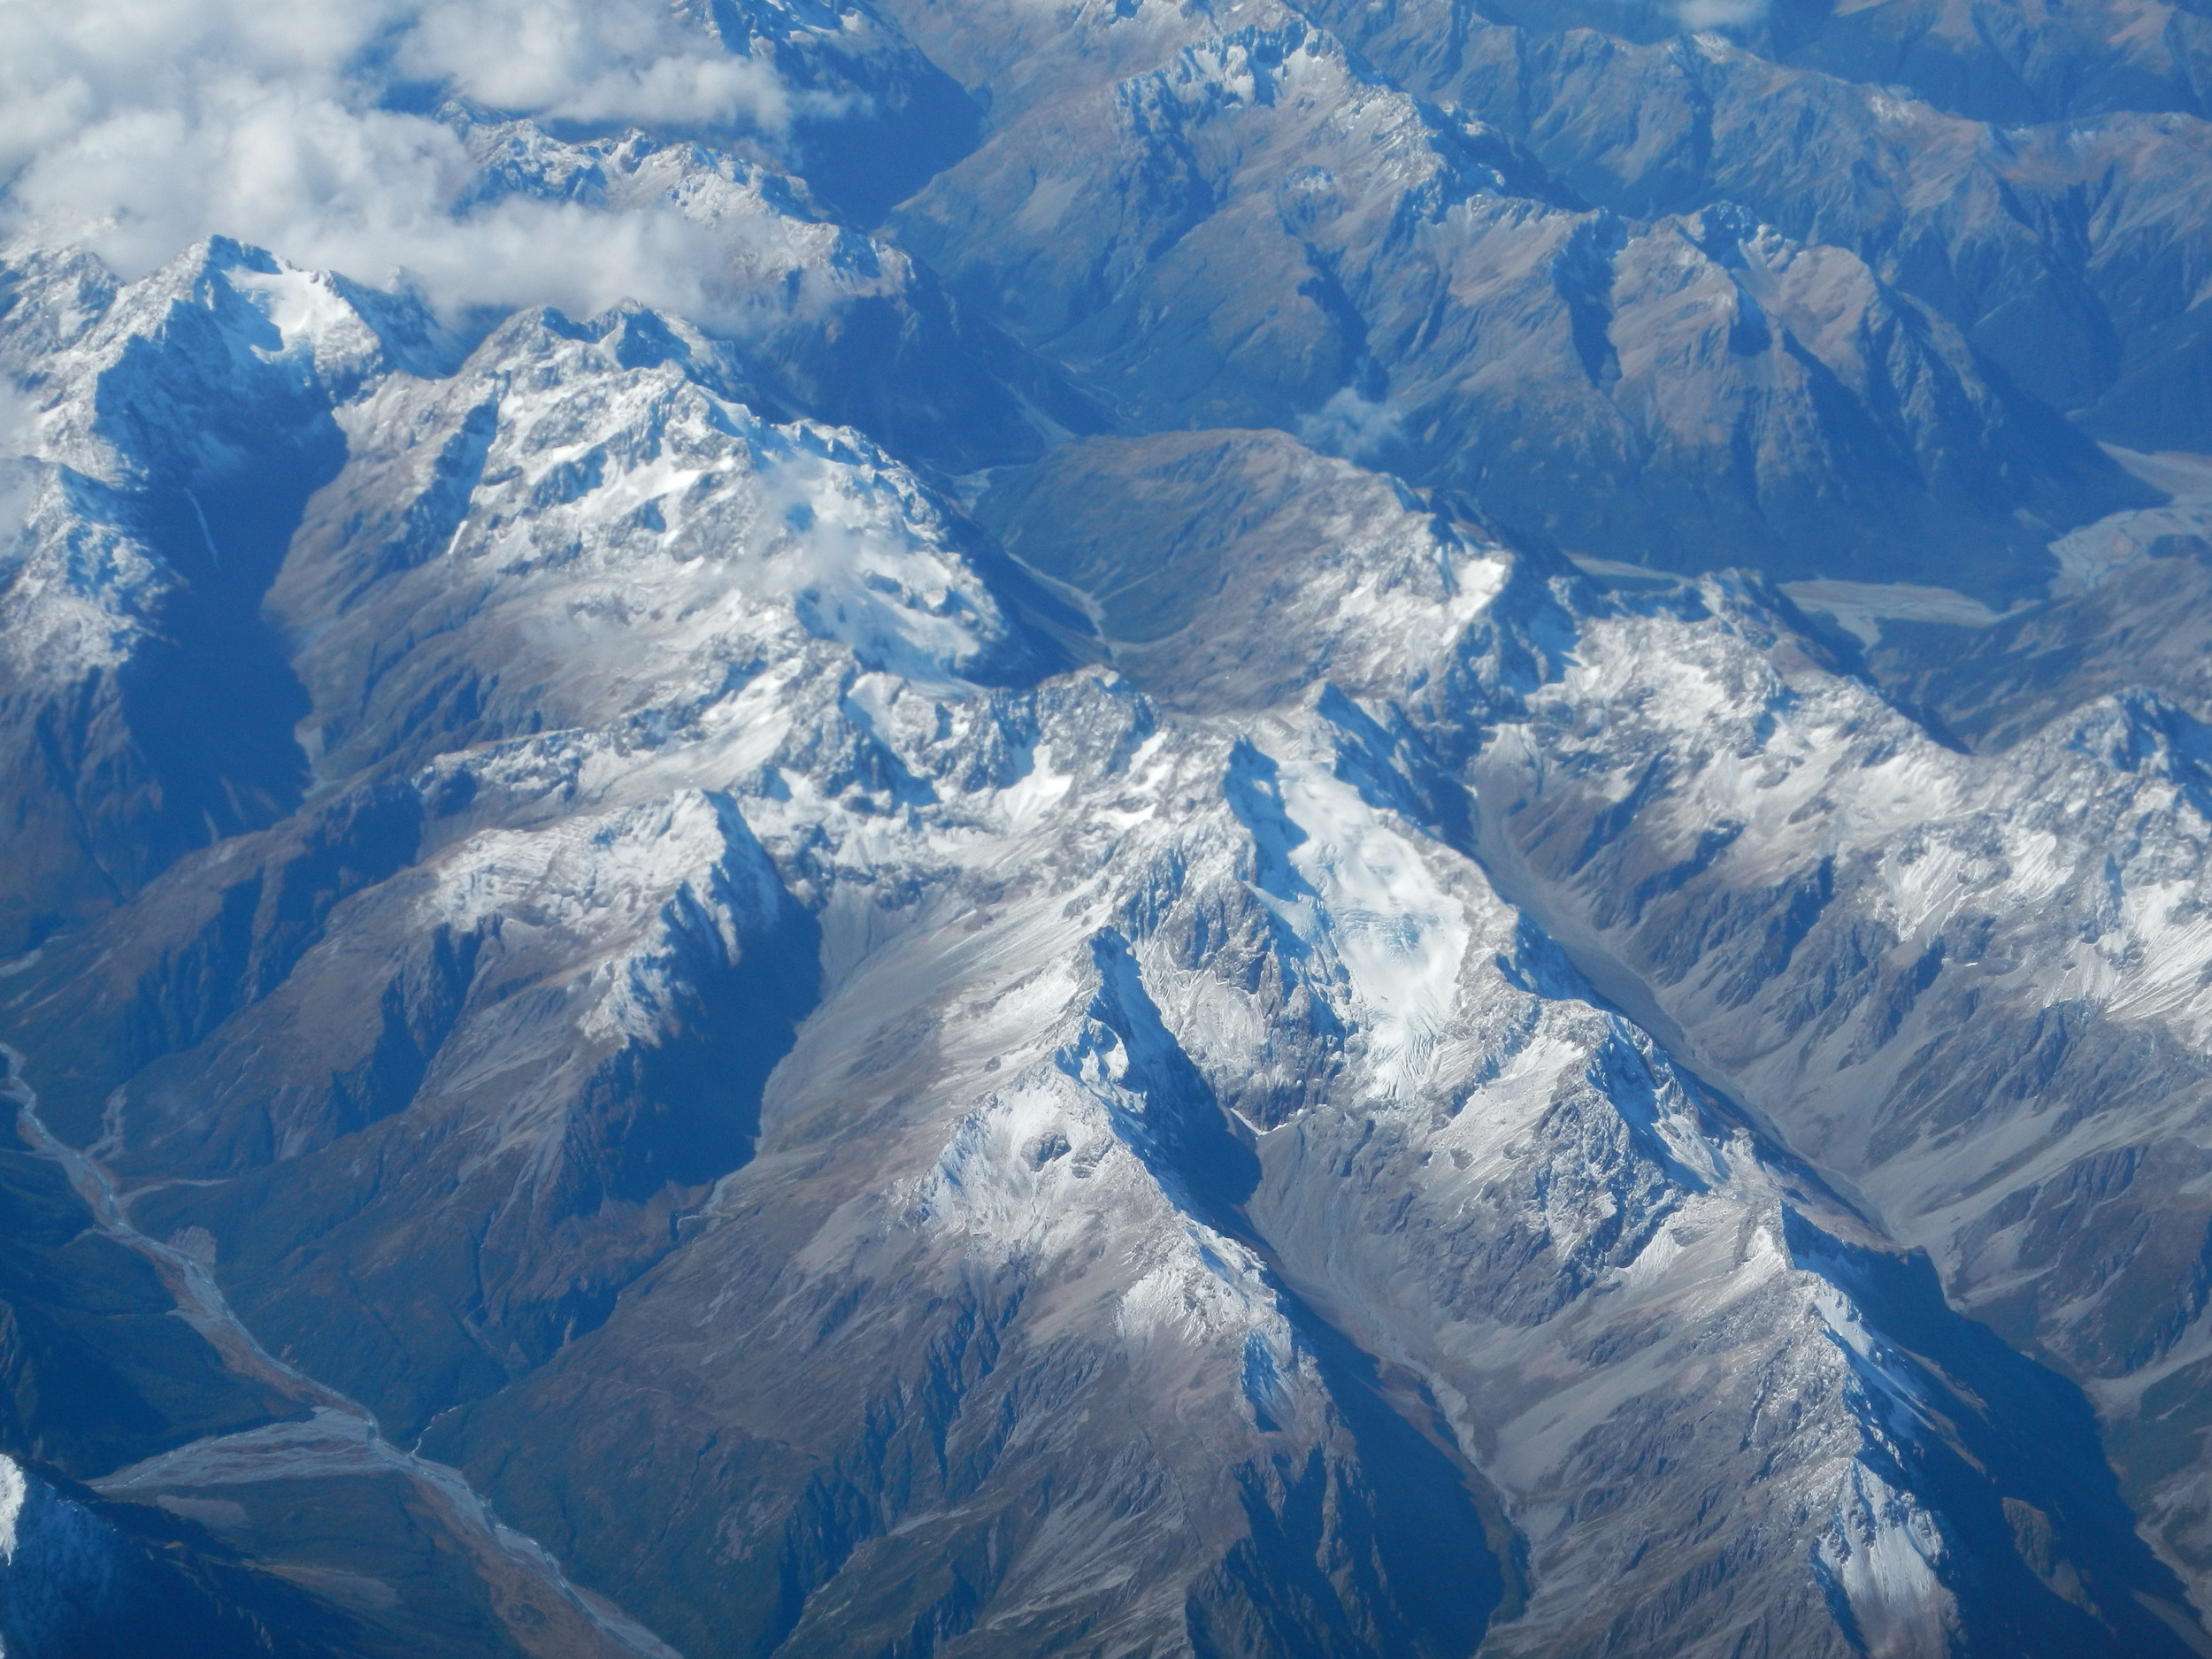 New Zealand from the air, 26 Mar 2012